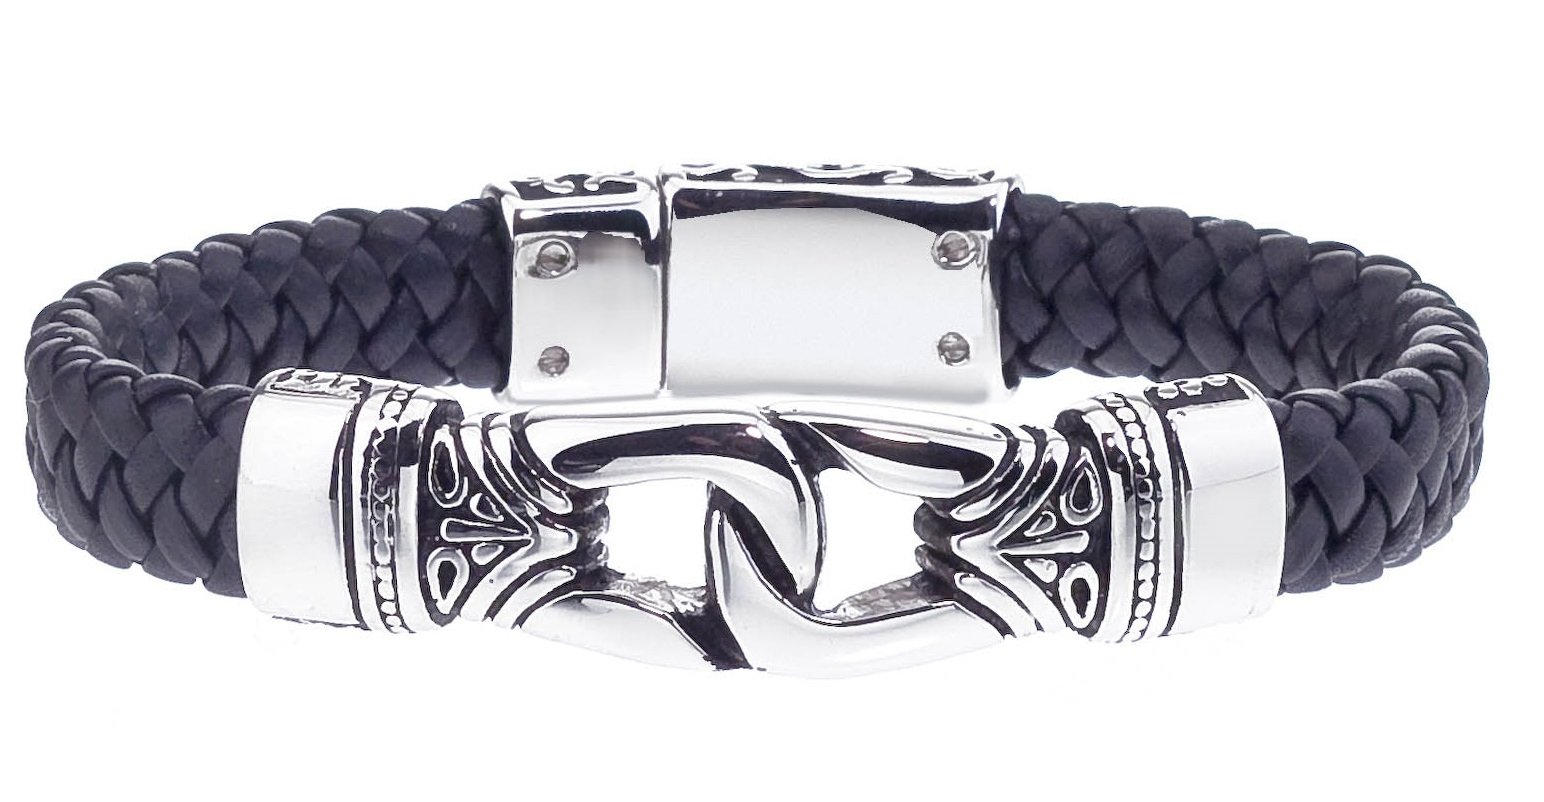 Antique Braided Black Leather Men's Bracelet Stainless Steel by AX Jewelry (Image #2)